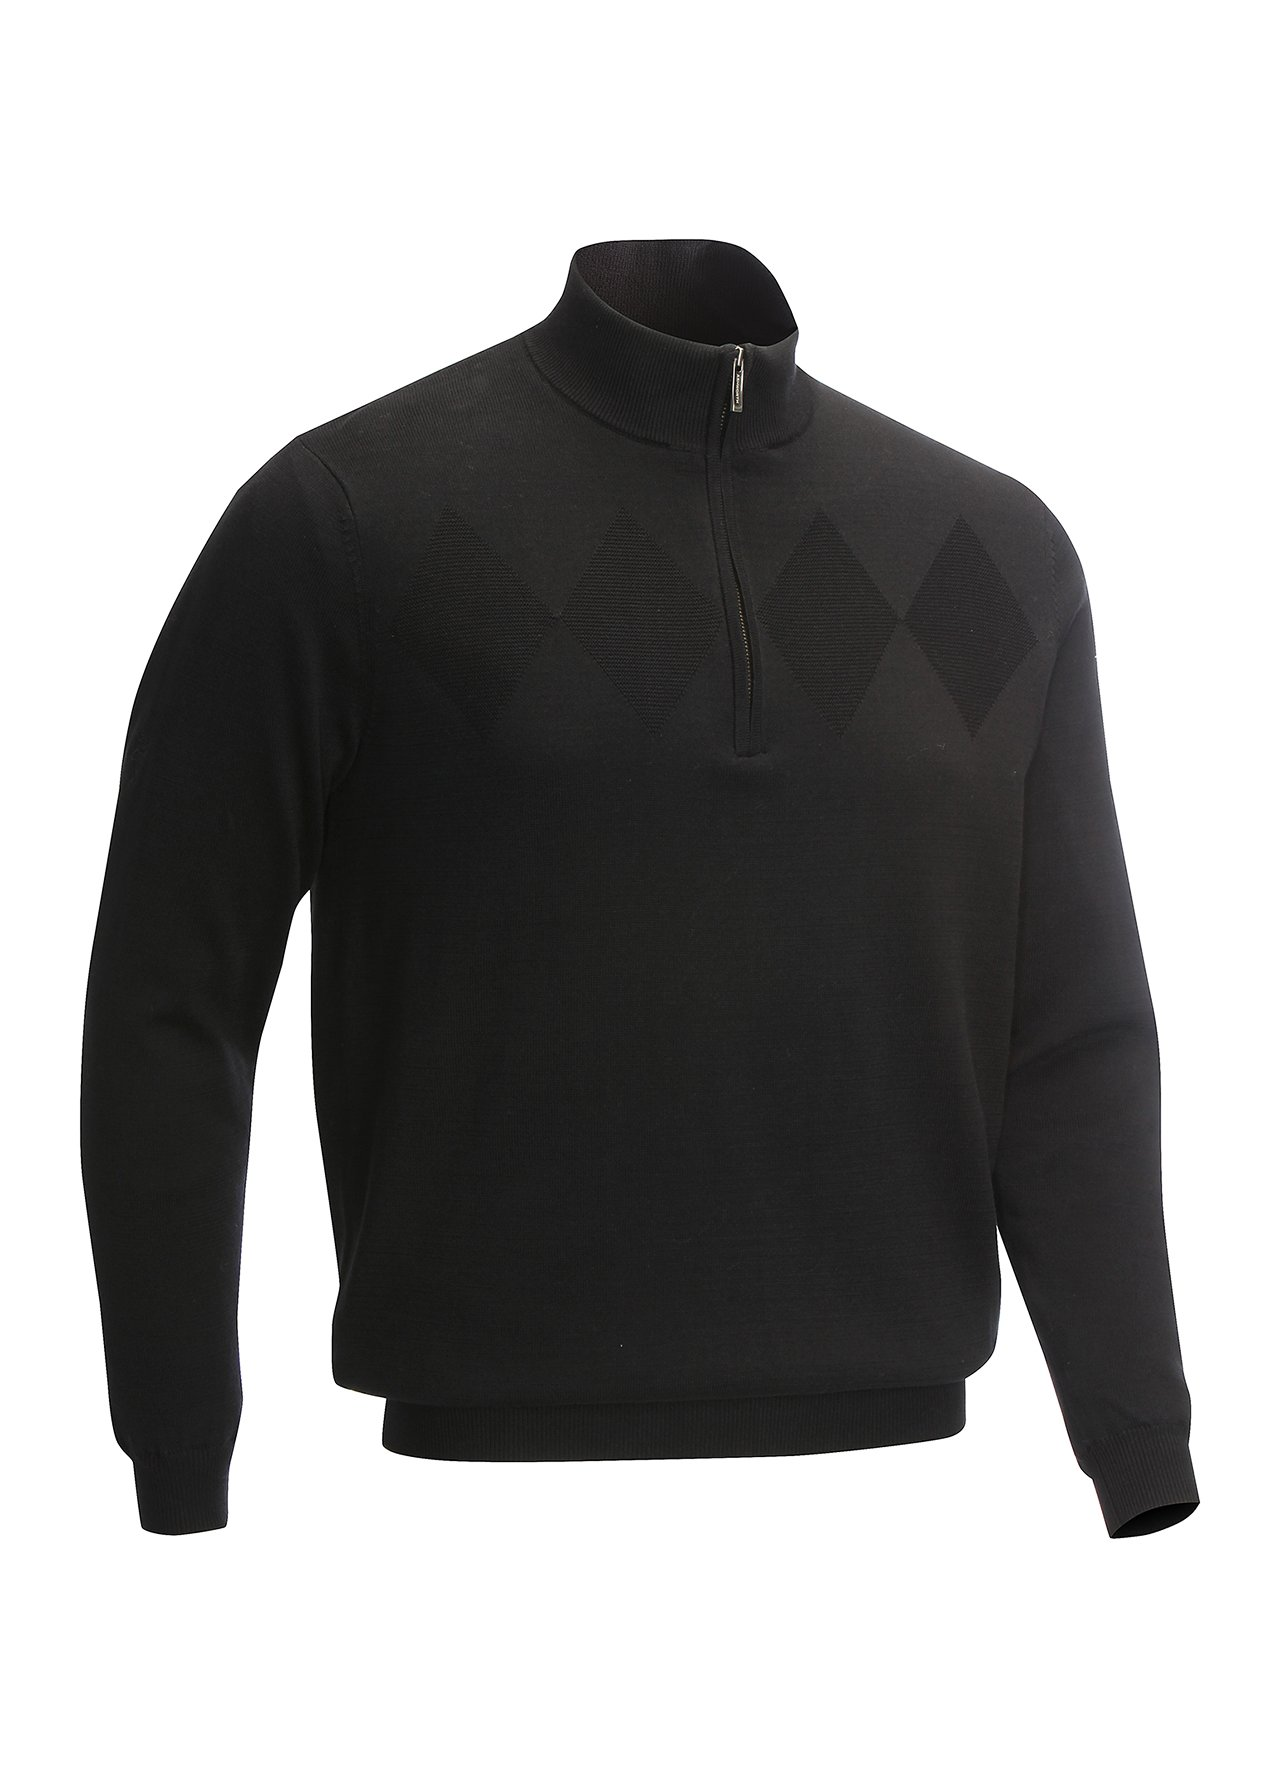 Our selection of clearance golf sale items offers you everything from golf clubs including putters through to high quality and affordable discount golf hereffiles5gs.gq adding new products into this category daily we can ensure that you find the very best products at a price that you won't believe.